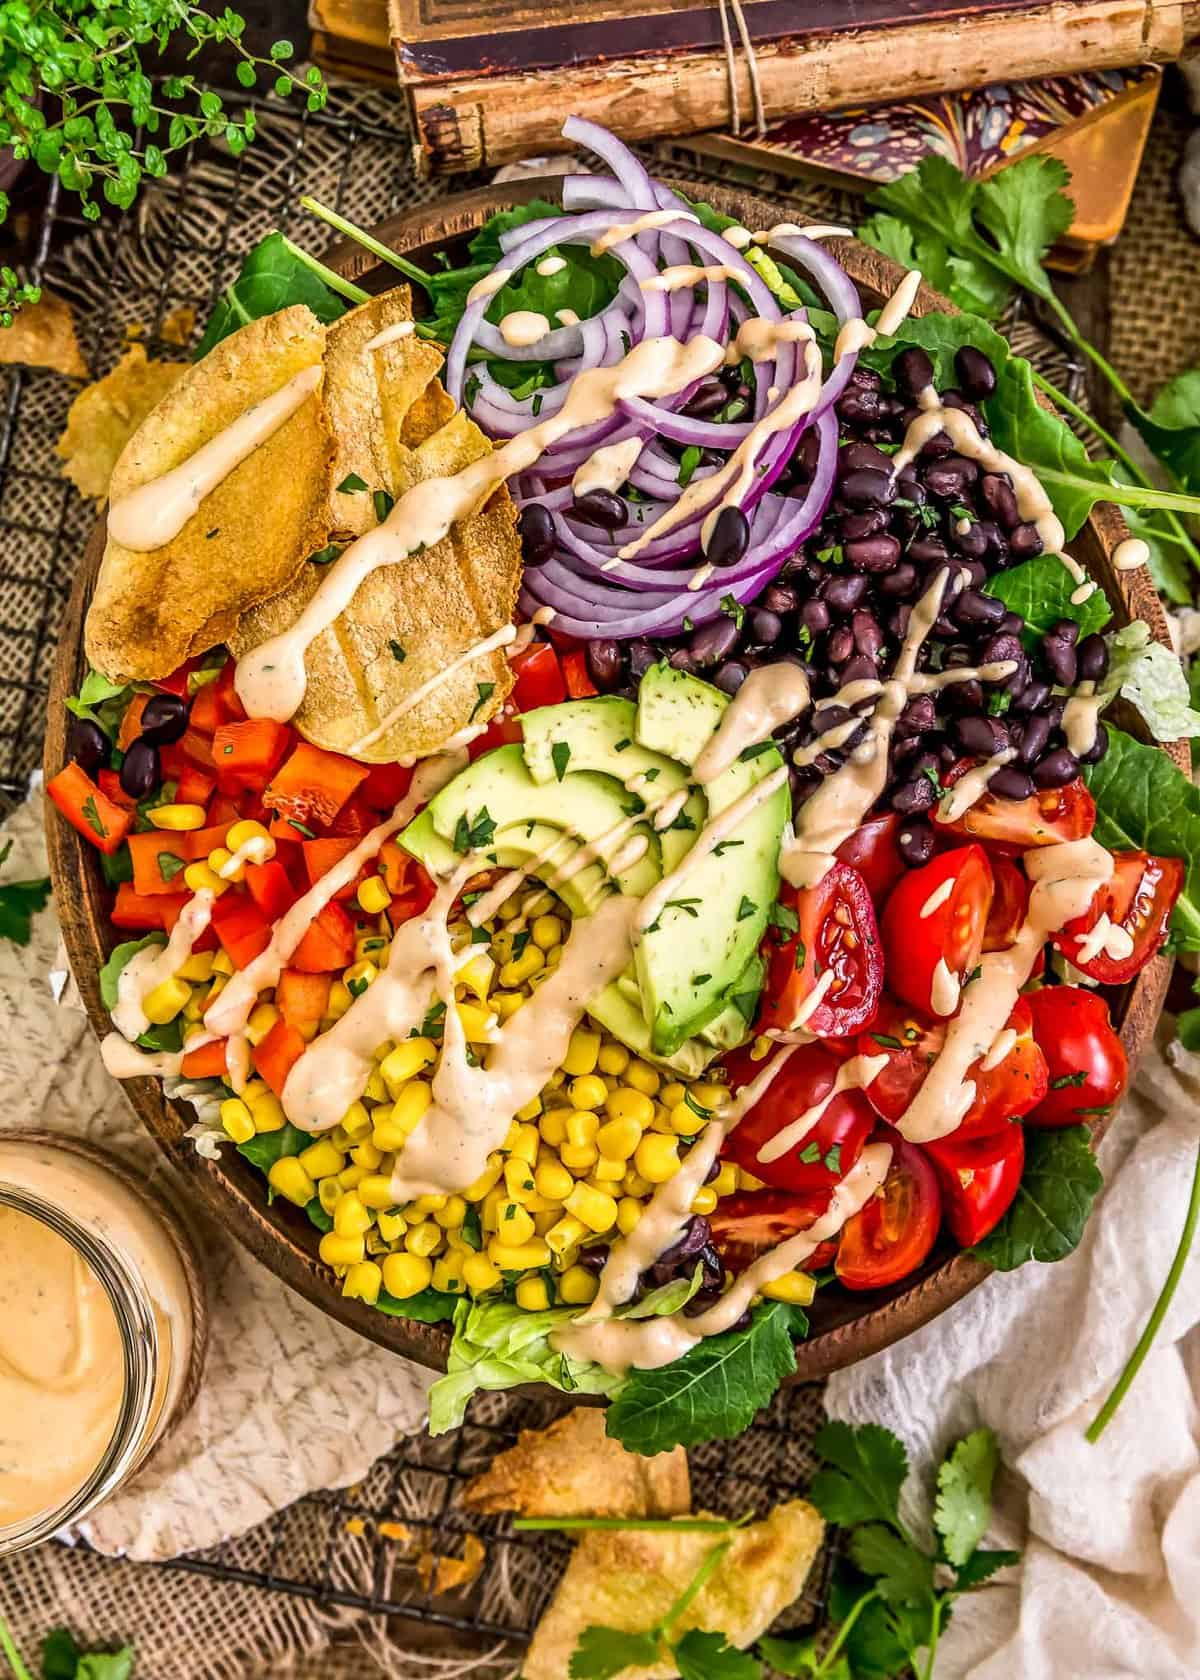 Salad with Vegan Chipotle Ranch Dressing